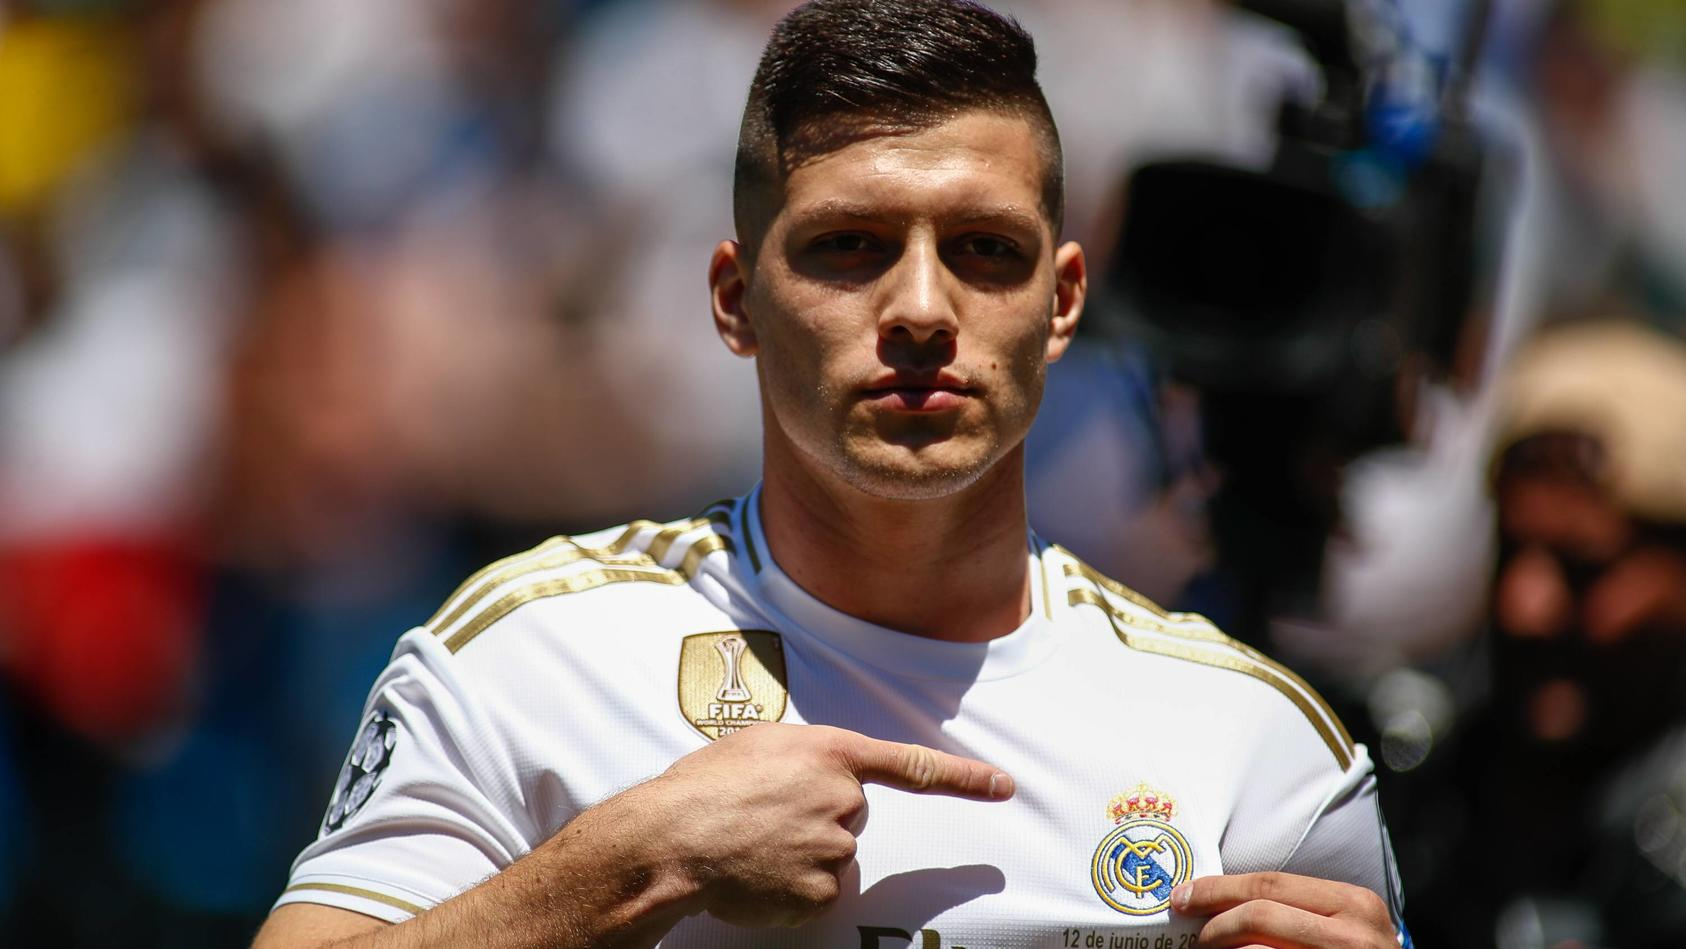 June 12 2019 Madrid MADRID SPAIN Luka Jovic during his presentation as new player of Real Mad